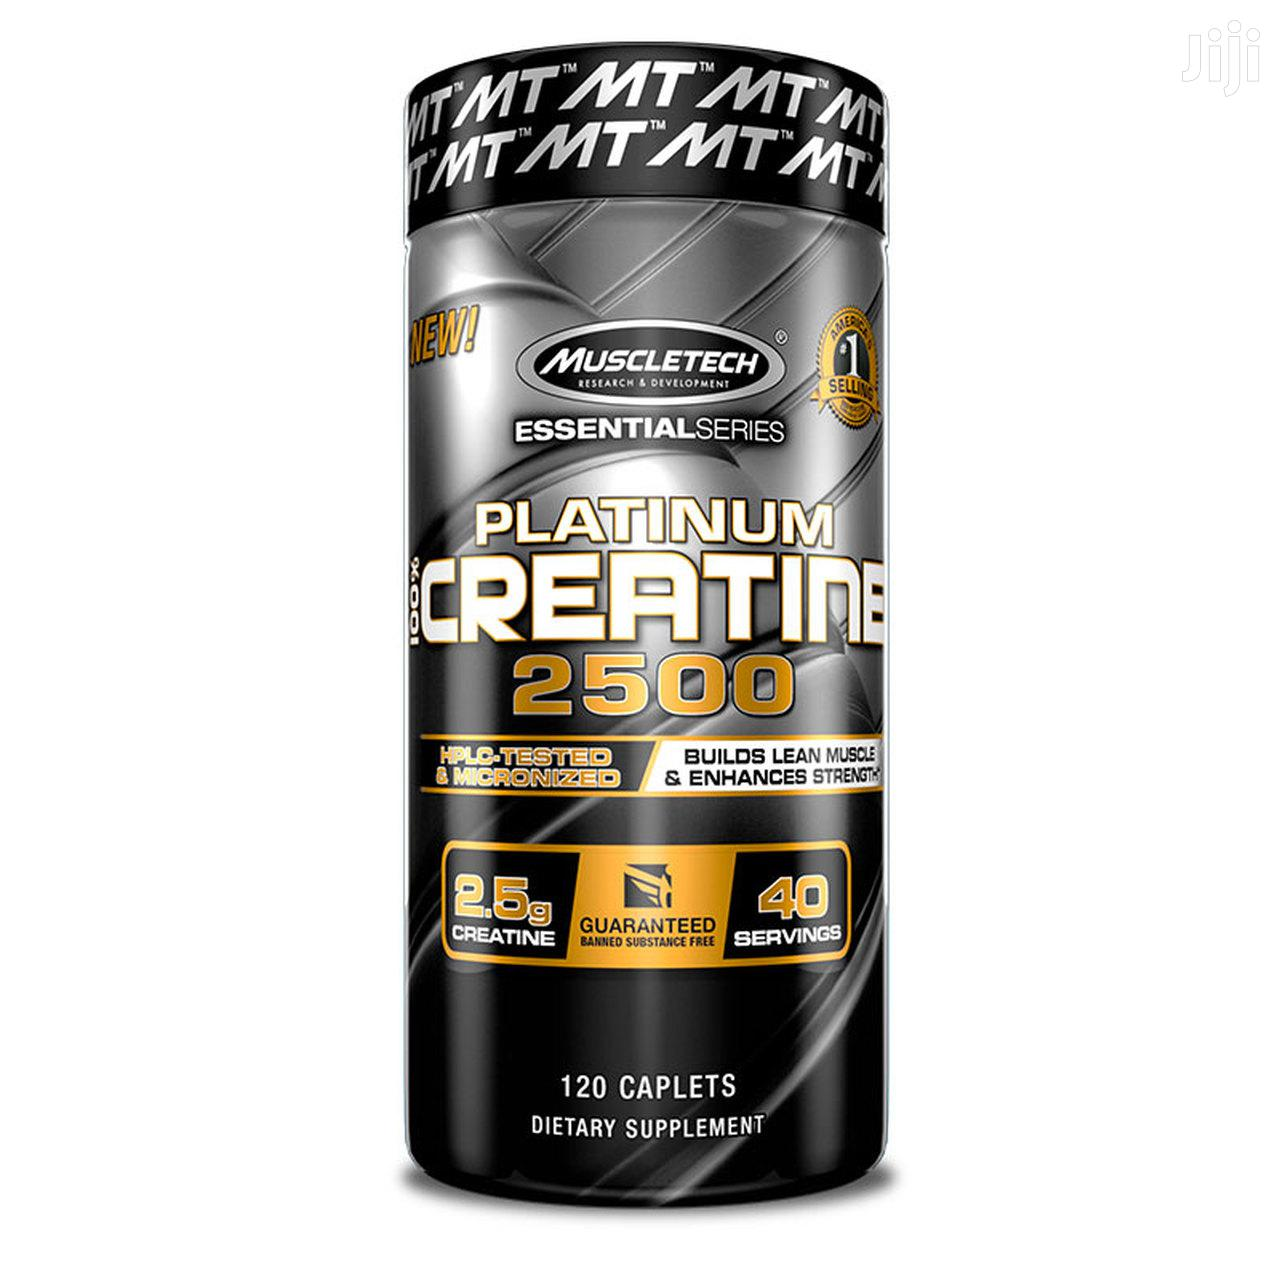 Archive: Supplement: Platinum Creatine, 120 Tablets